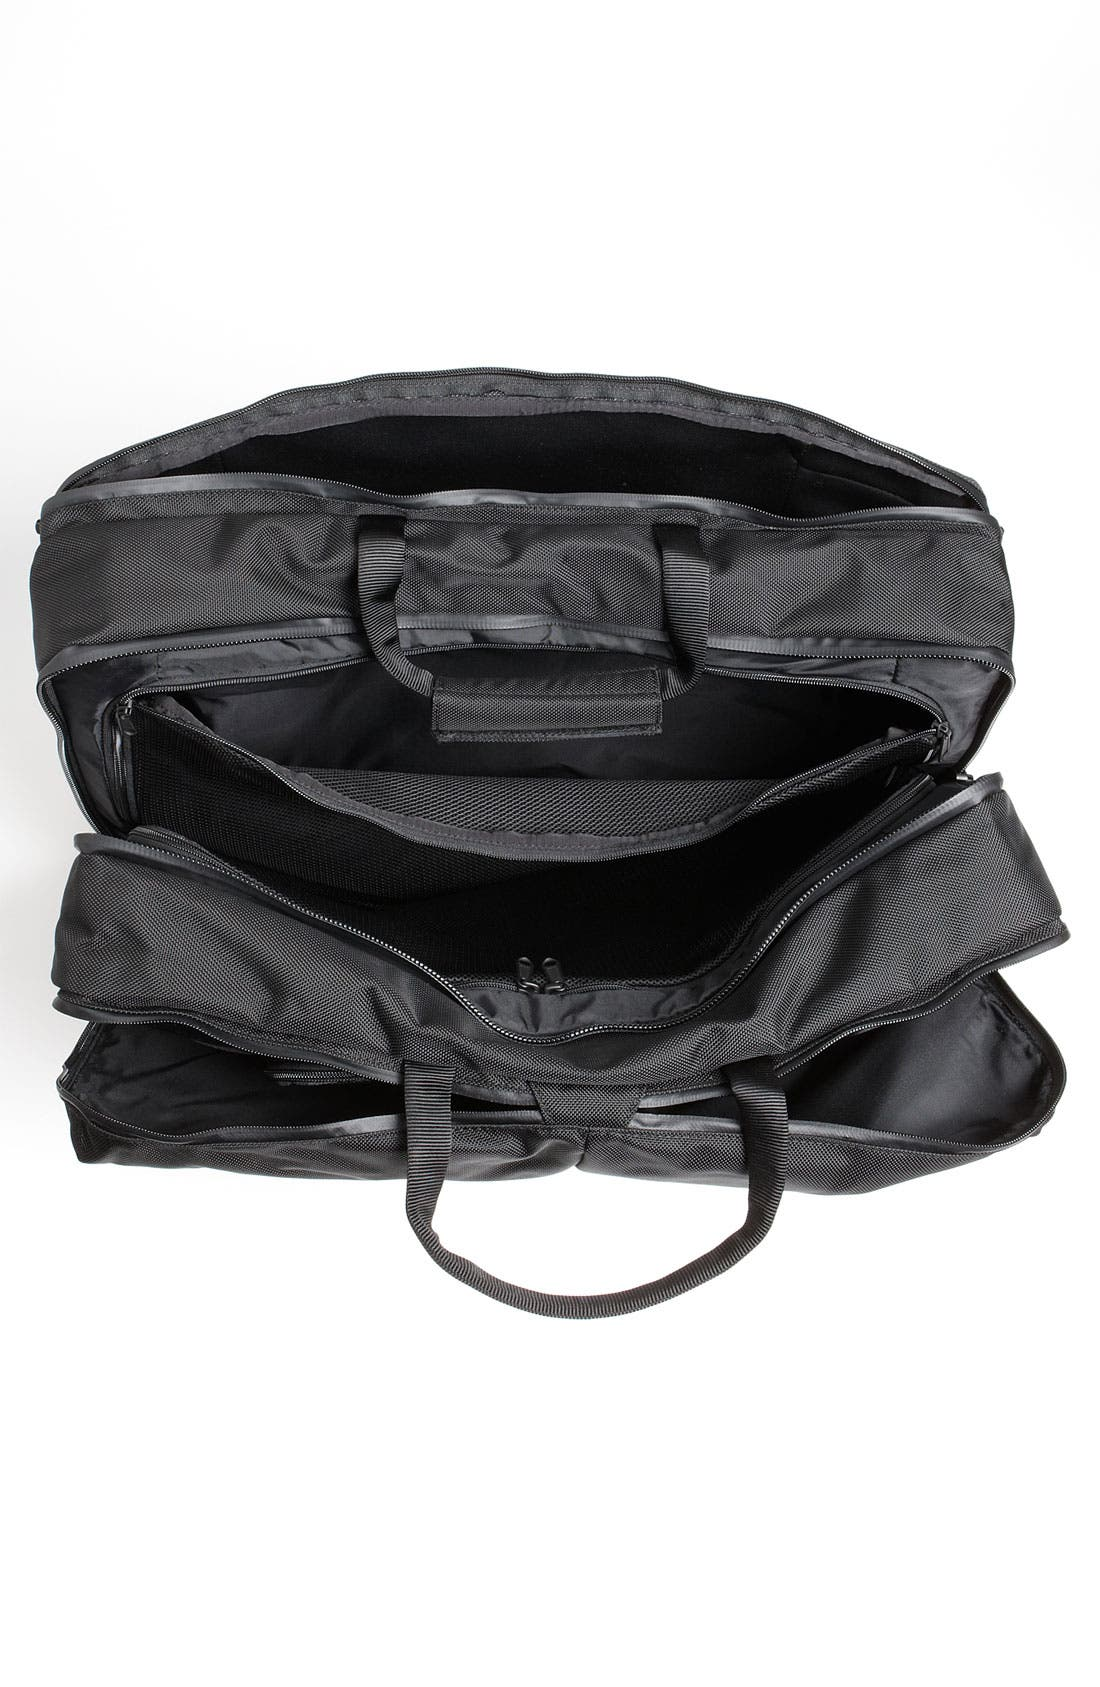 Alternate Image 3  - The North Face 'Shuttle' Duffel Bag